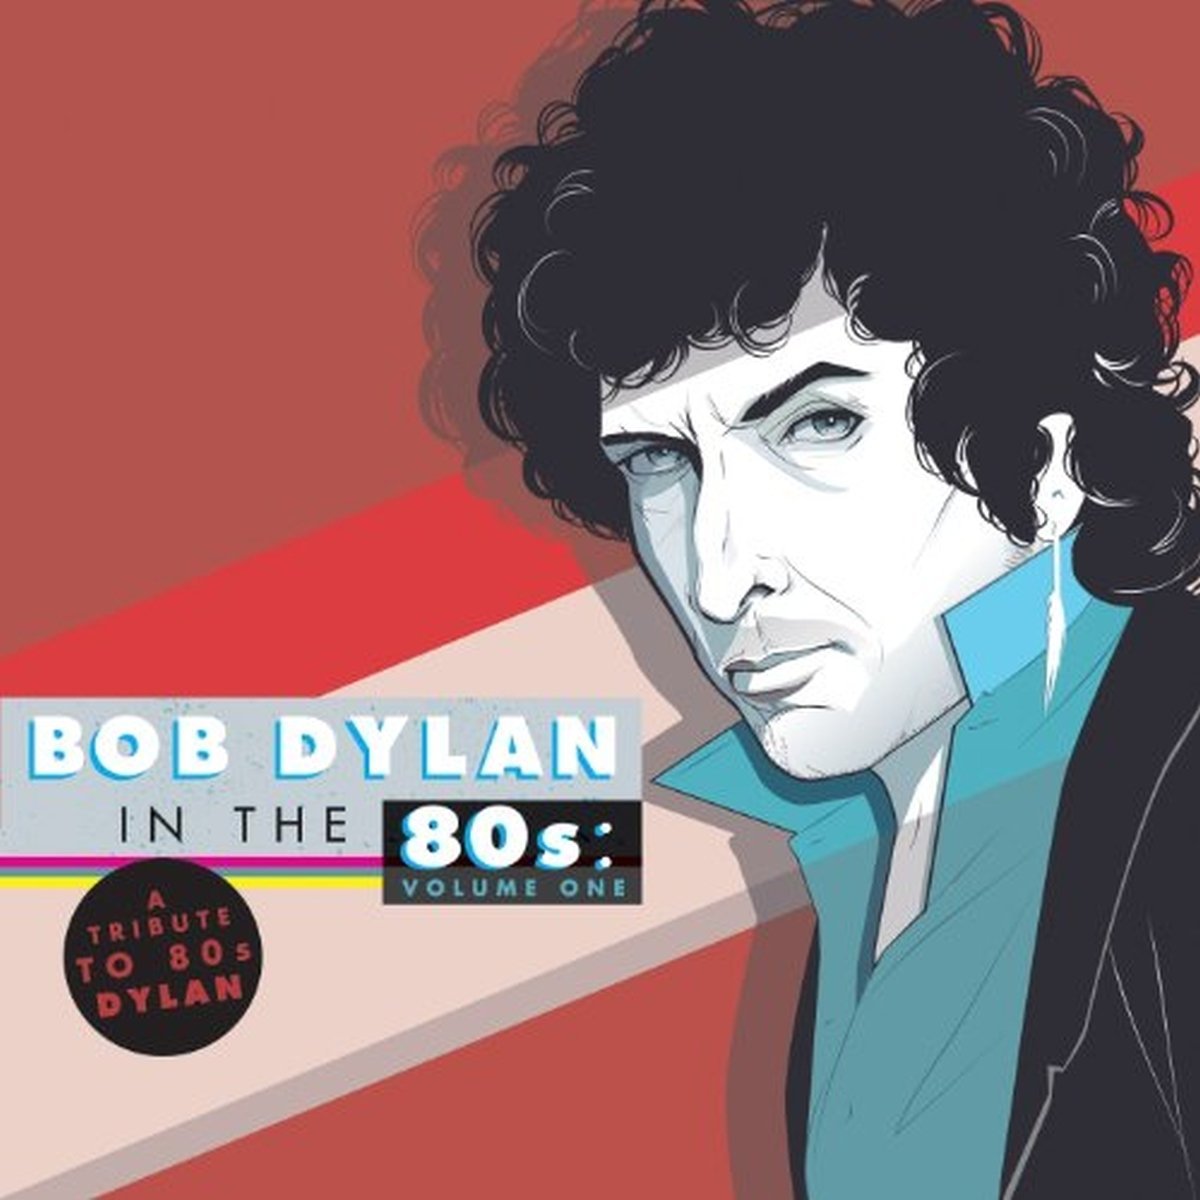 A Tribute To Bob Dylan In The 80s: Volume 1 [2 LP] by VINYL